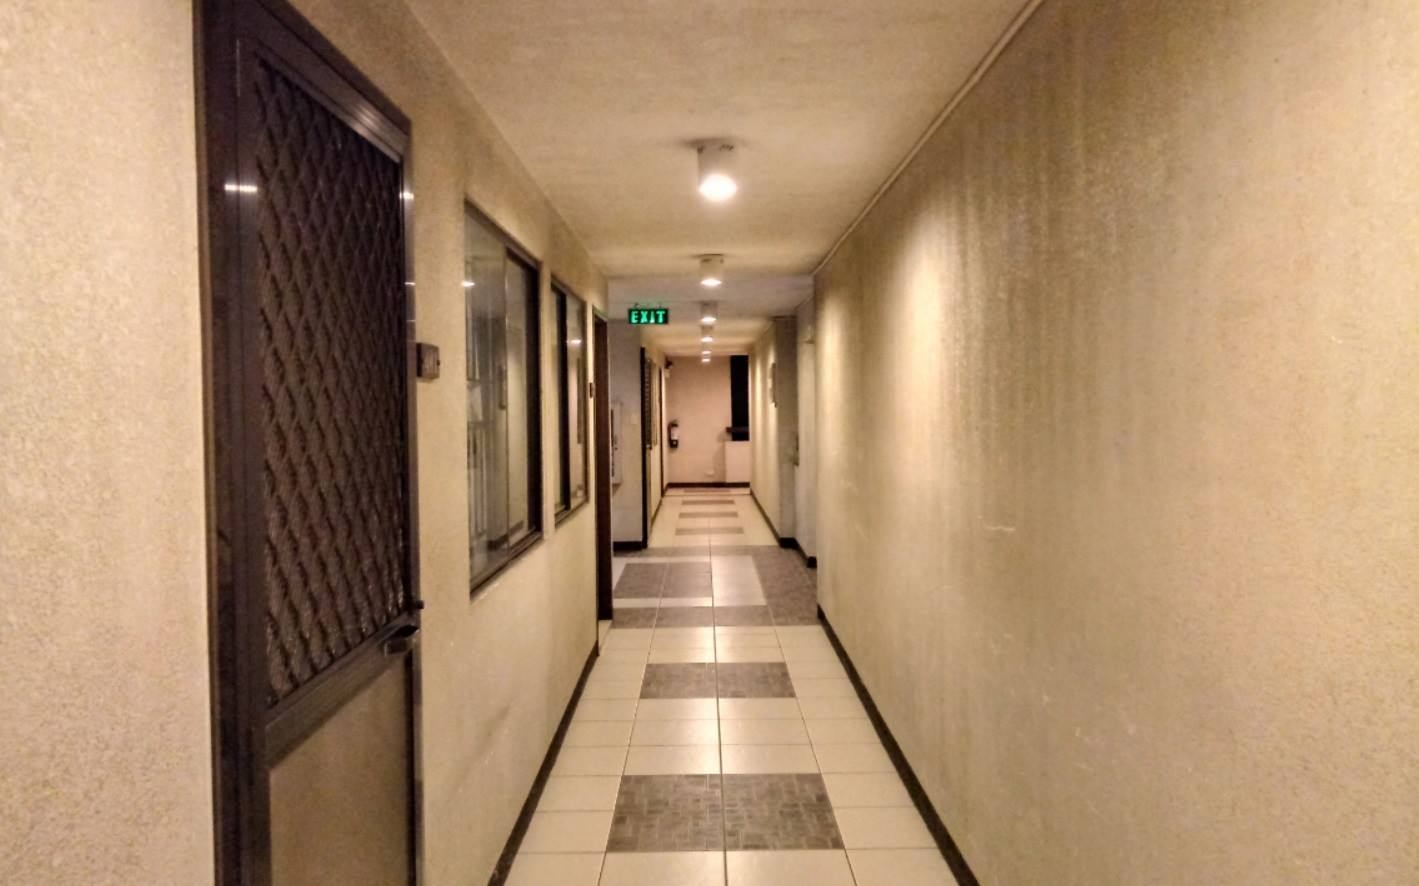 LG Stylus 3 Review - Rear Camera Sample - Hallway at Night (with HDR)